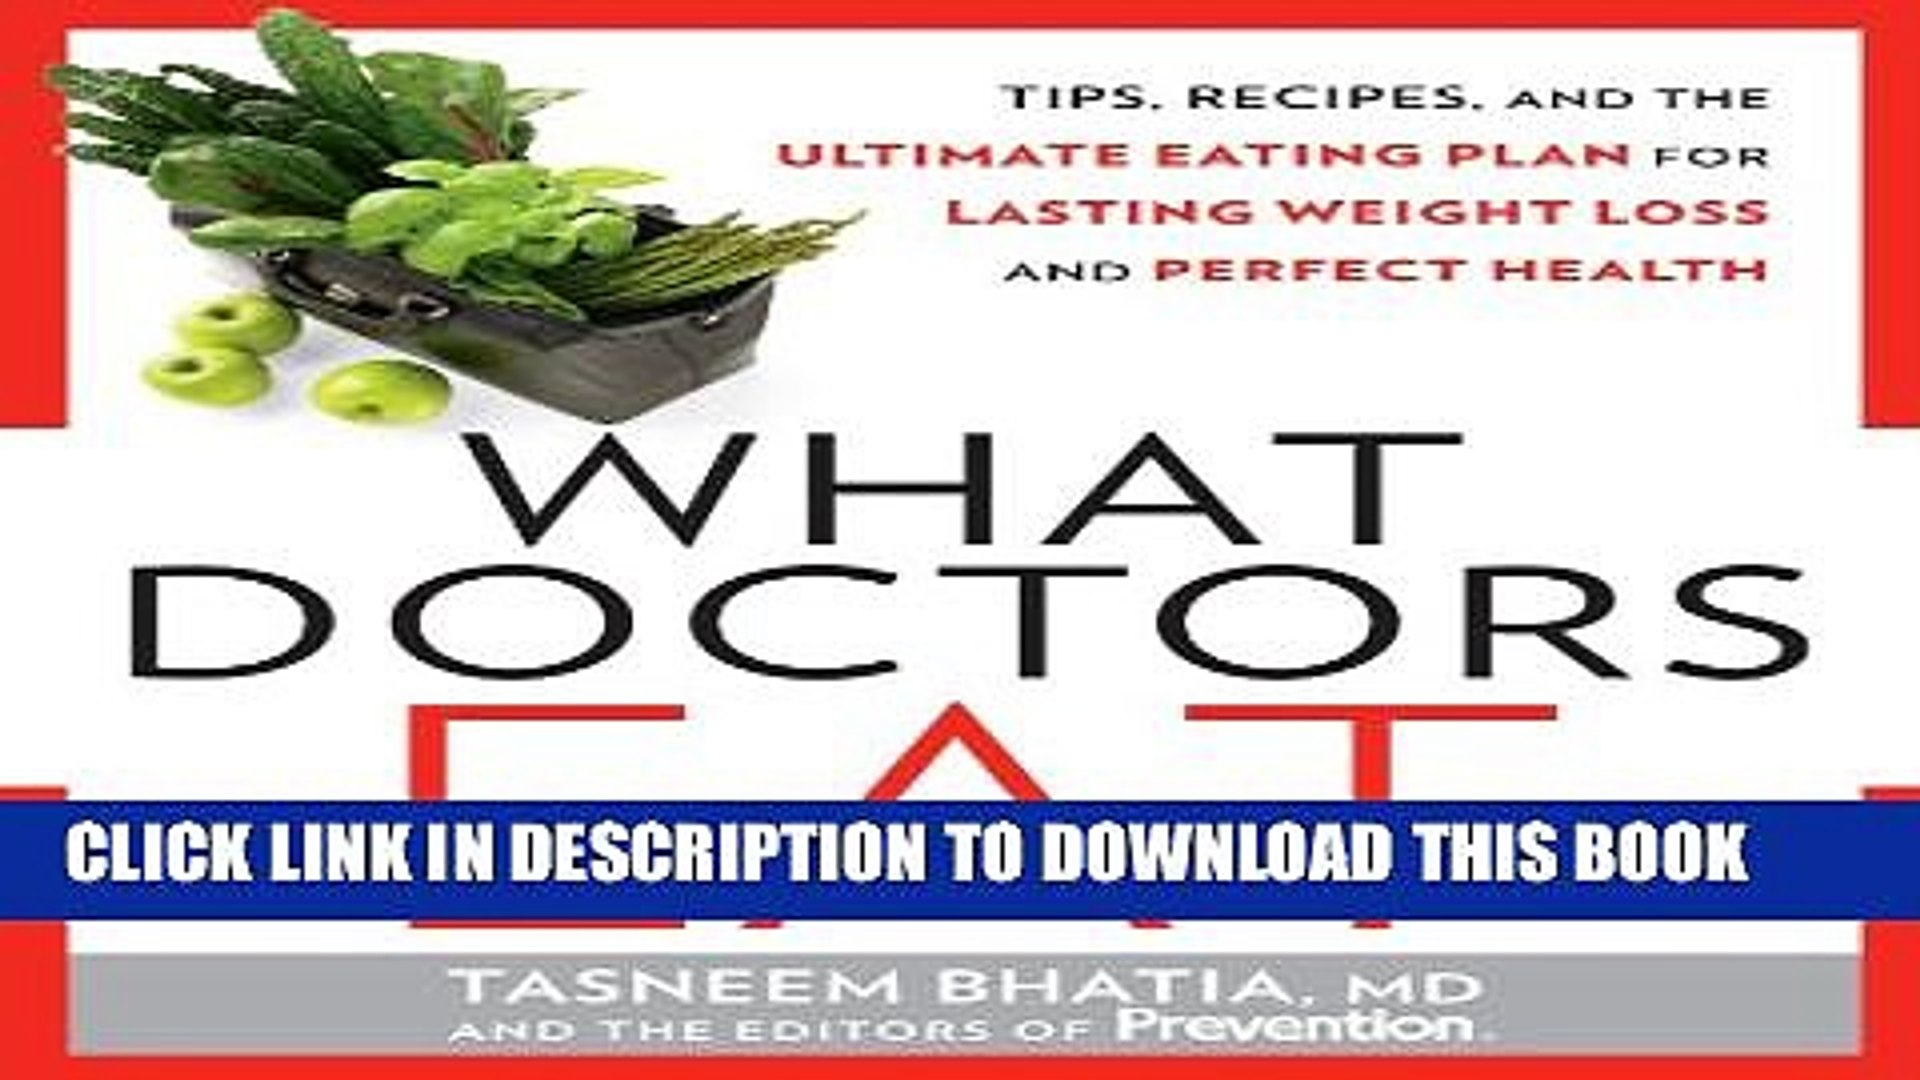 [PDF] What Doctors Eat: Tips, Recipes, and the Ultimate Eating Plan for  Lasting Weight Loss and